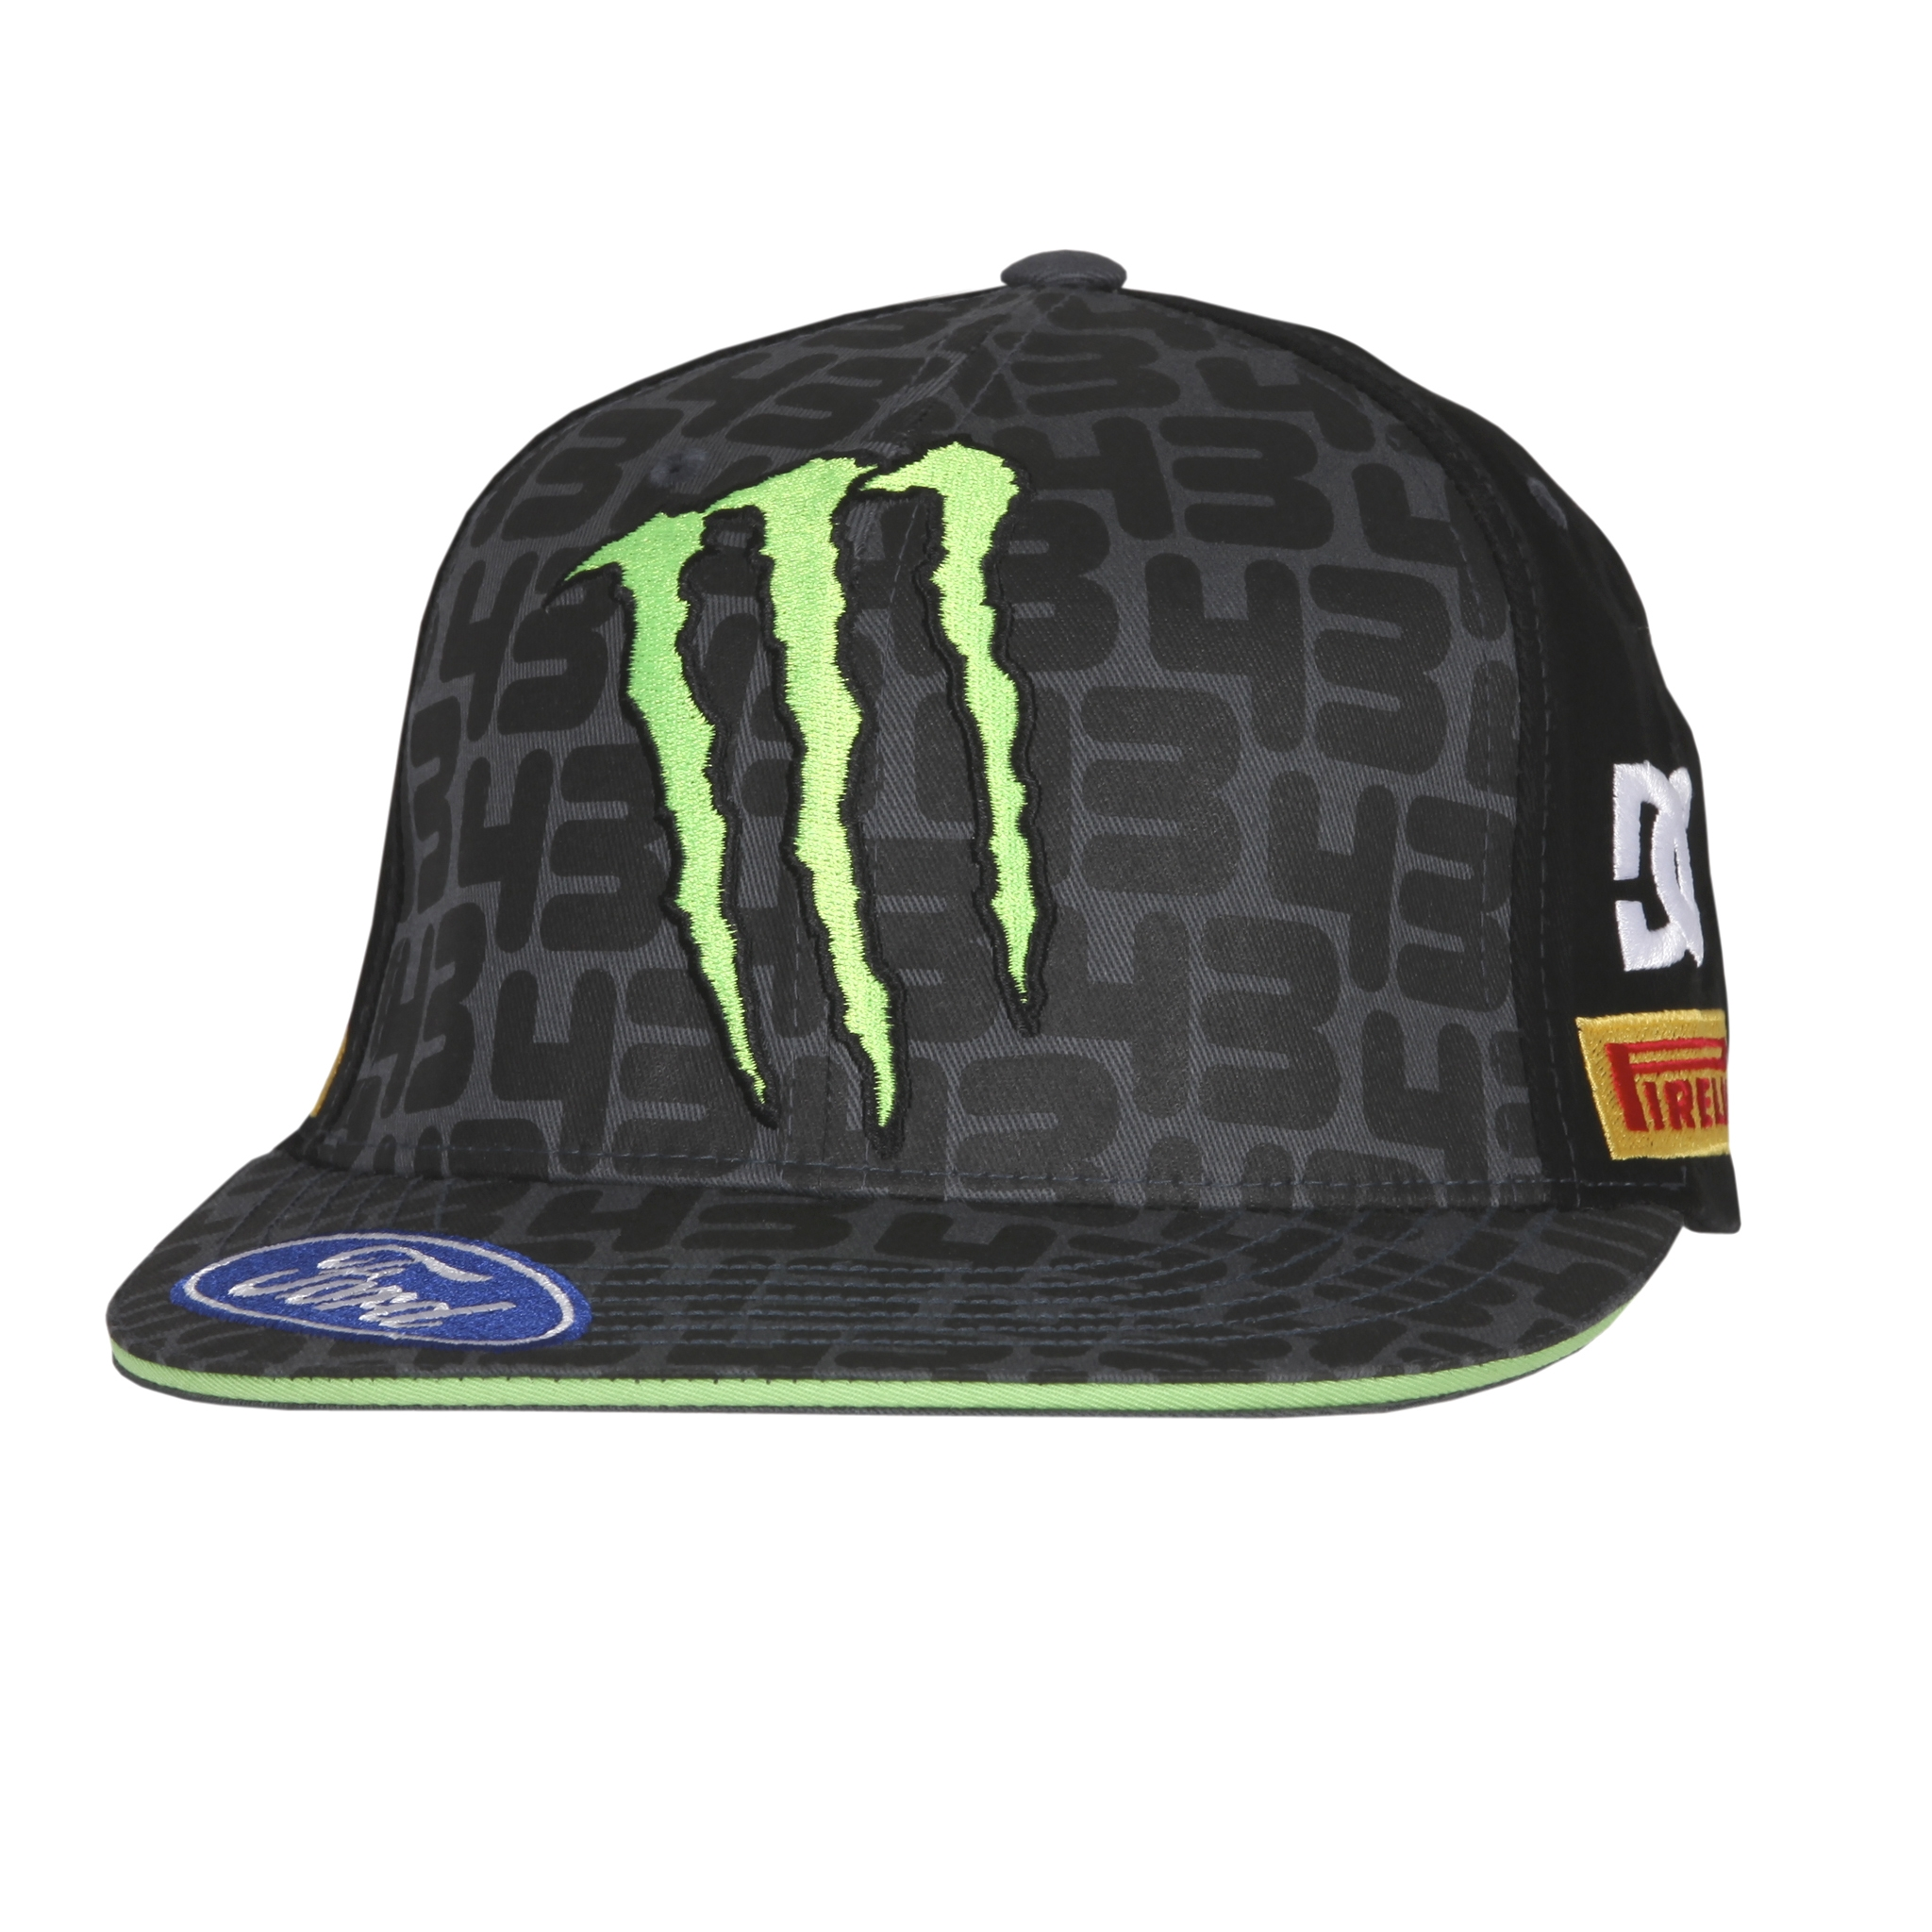 DC SHOES KEN BLOCK 43 MONSTER